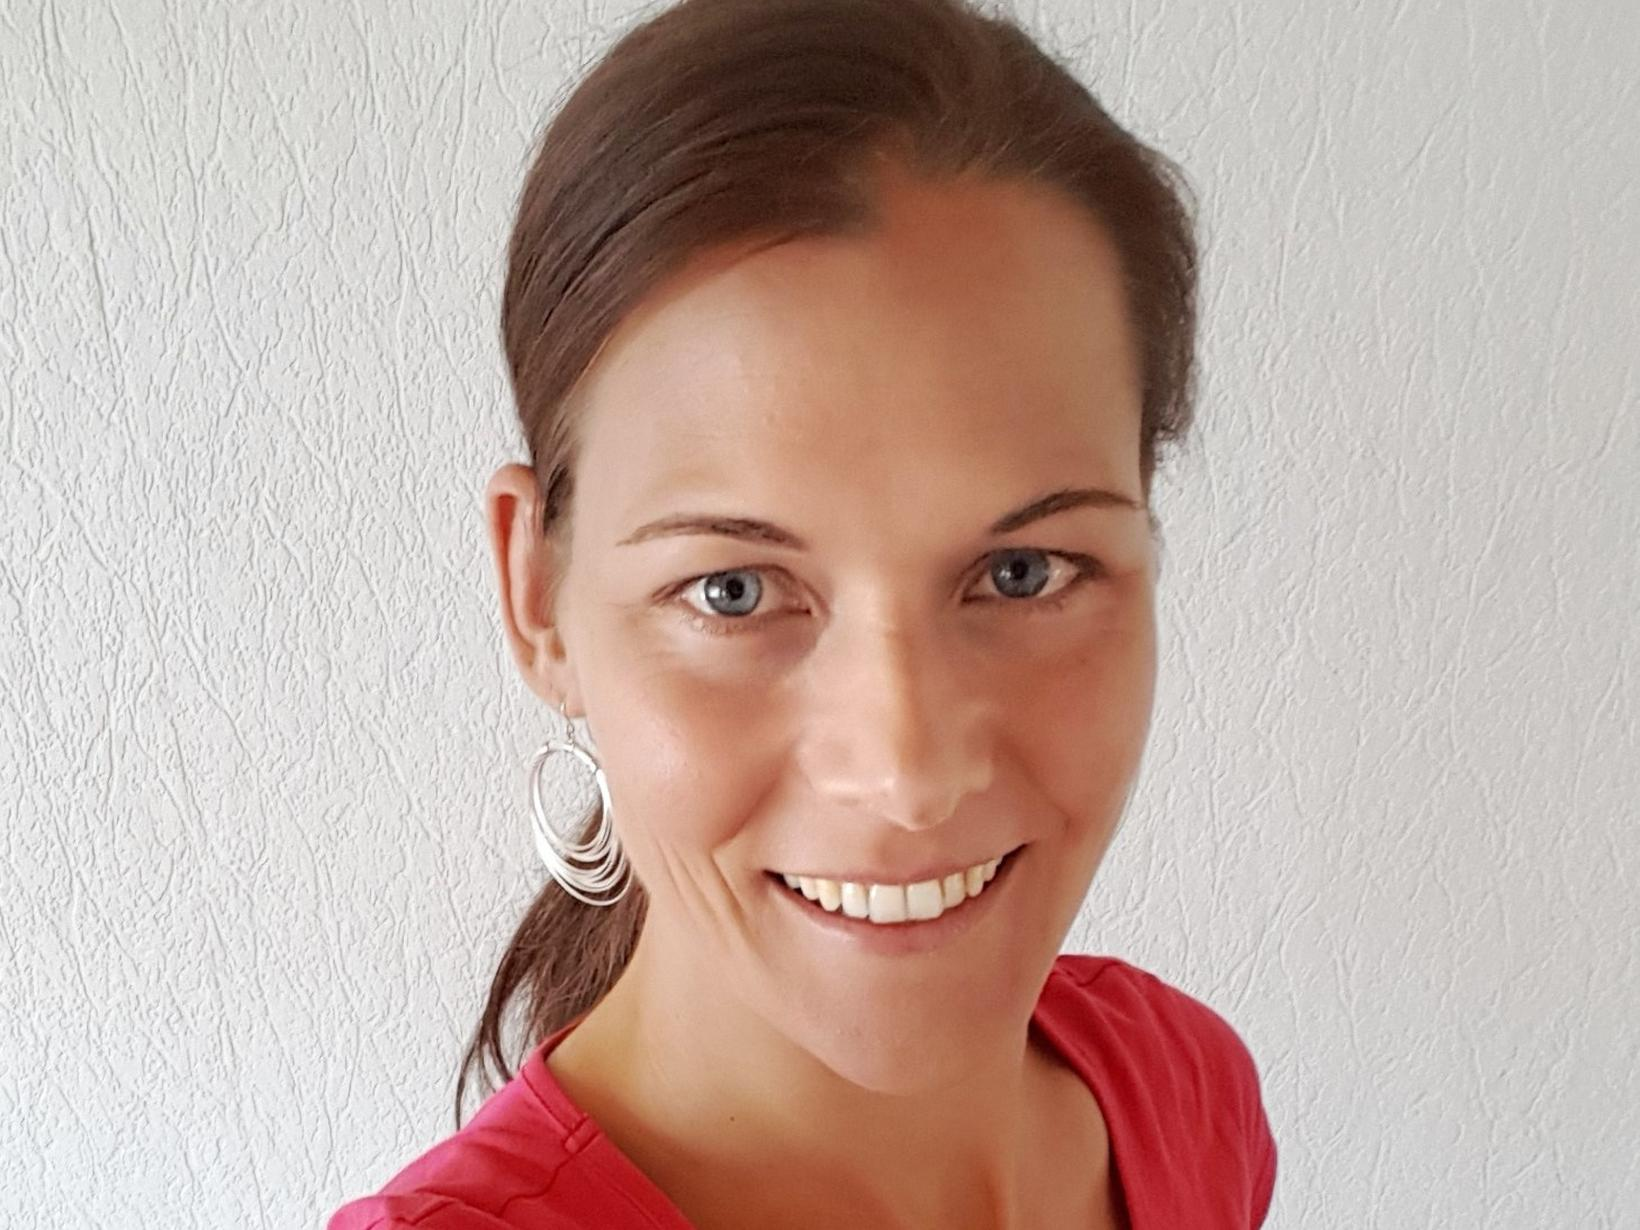 Juliane from Braunschweig, Germany